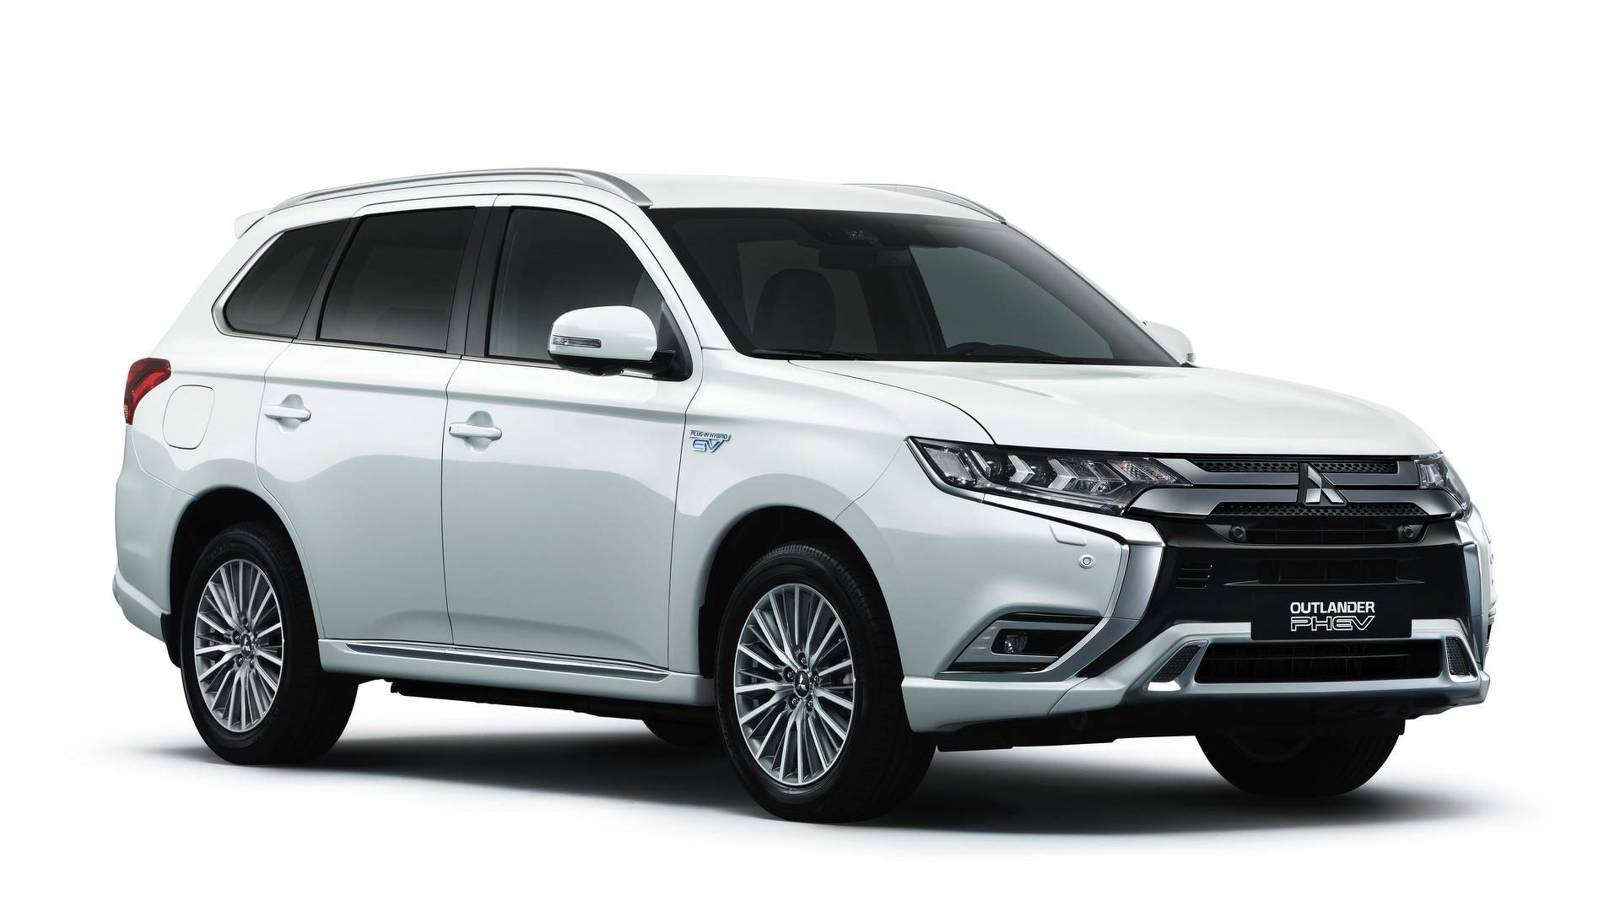 Mitsubishi Outlander Phev 2019 Review This Isn T The Hybrid Suv You